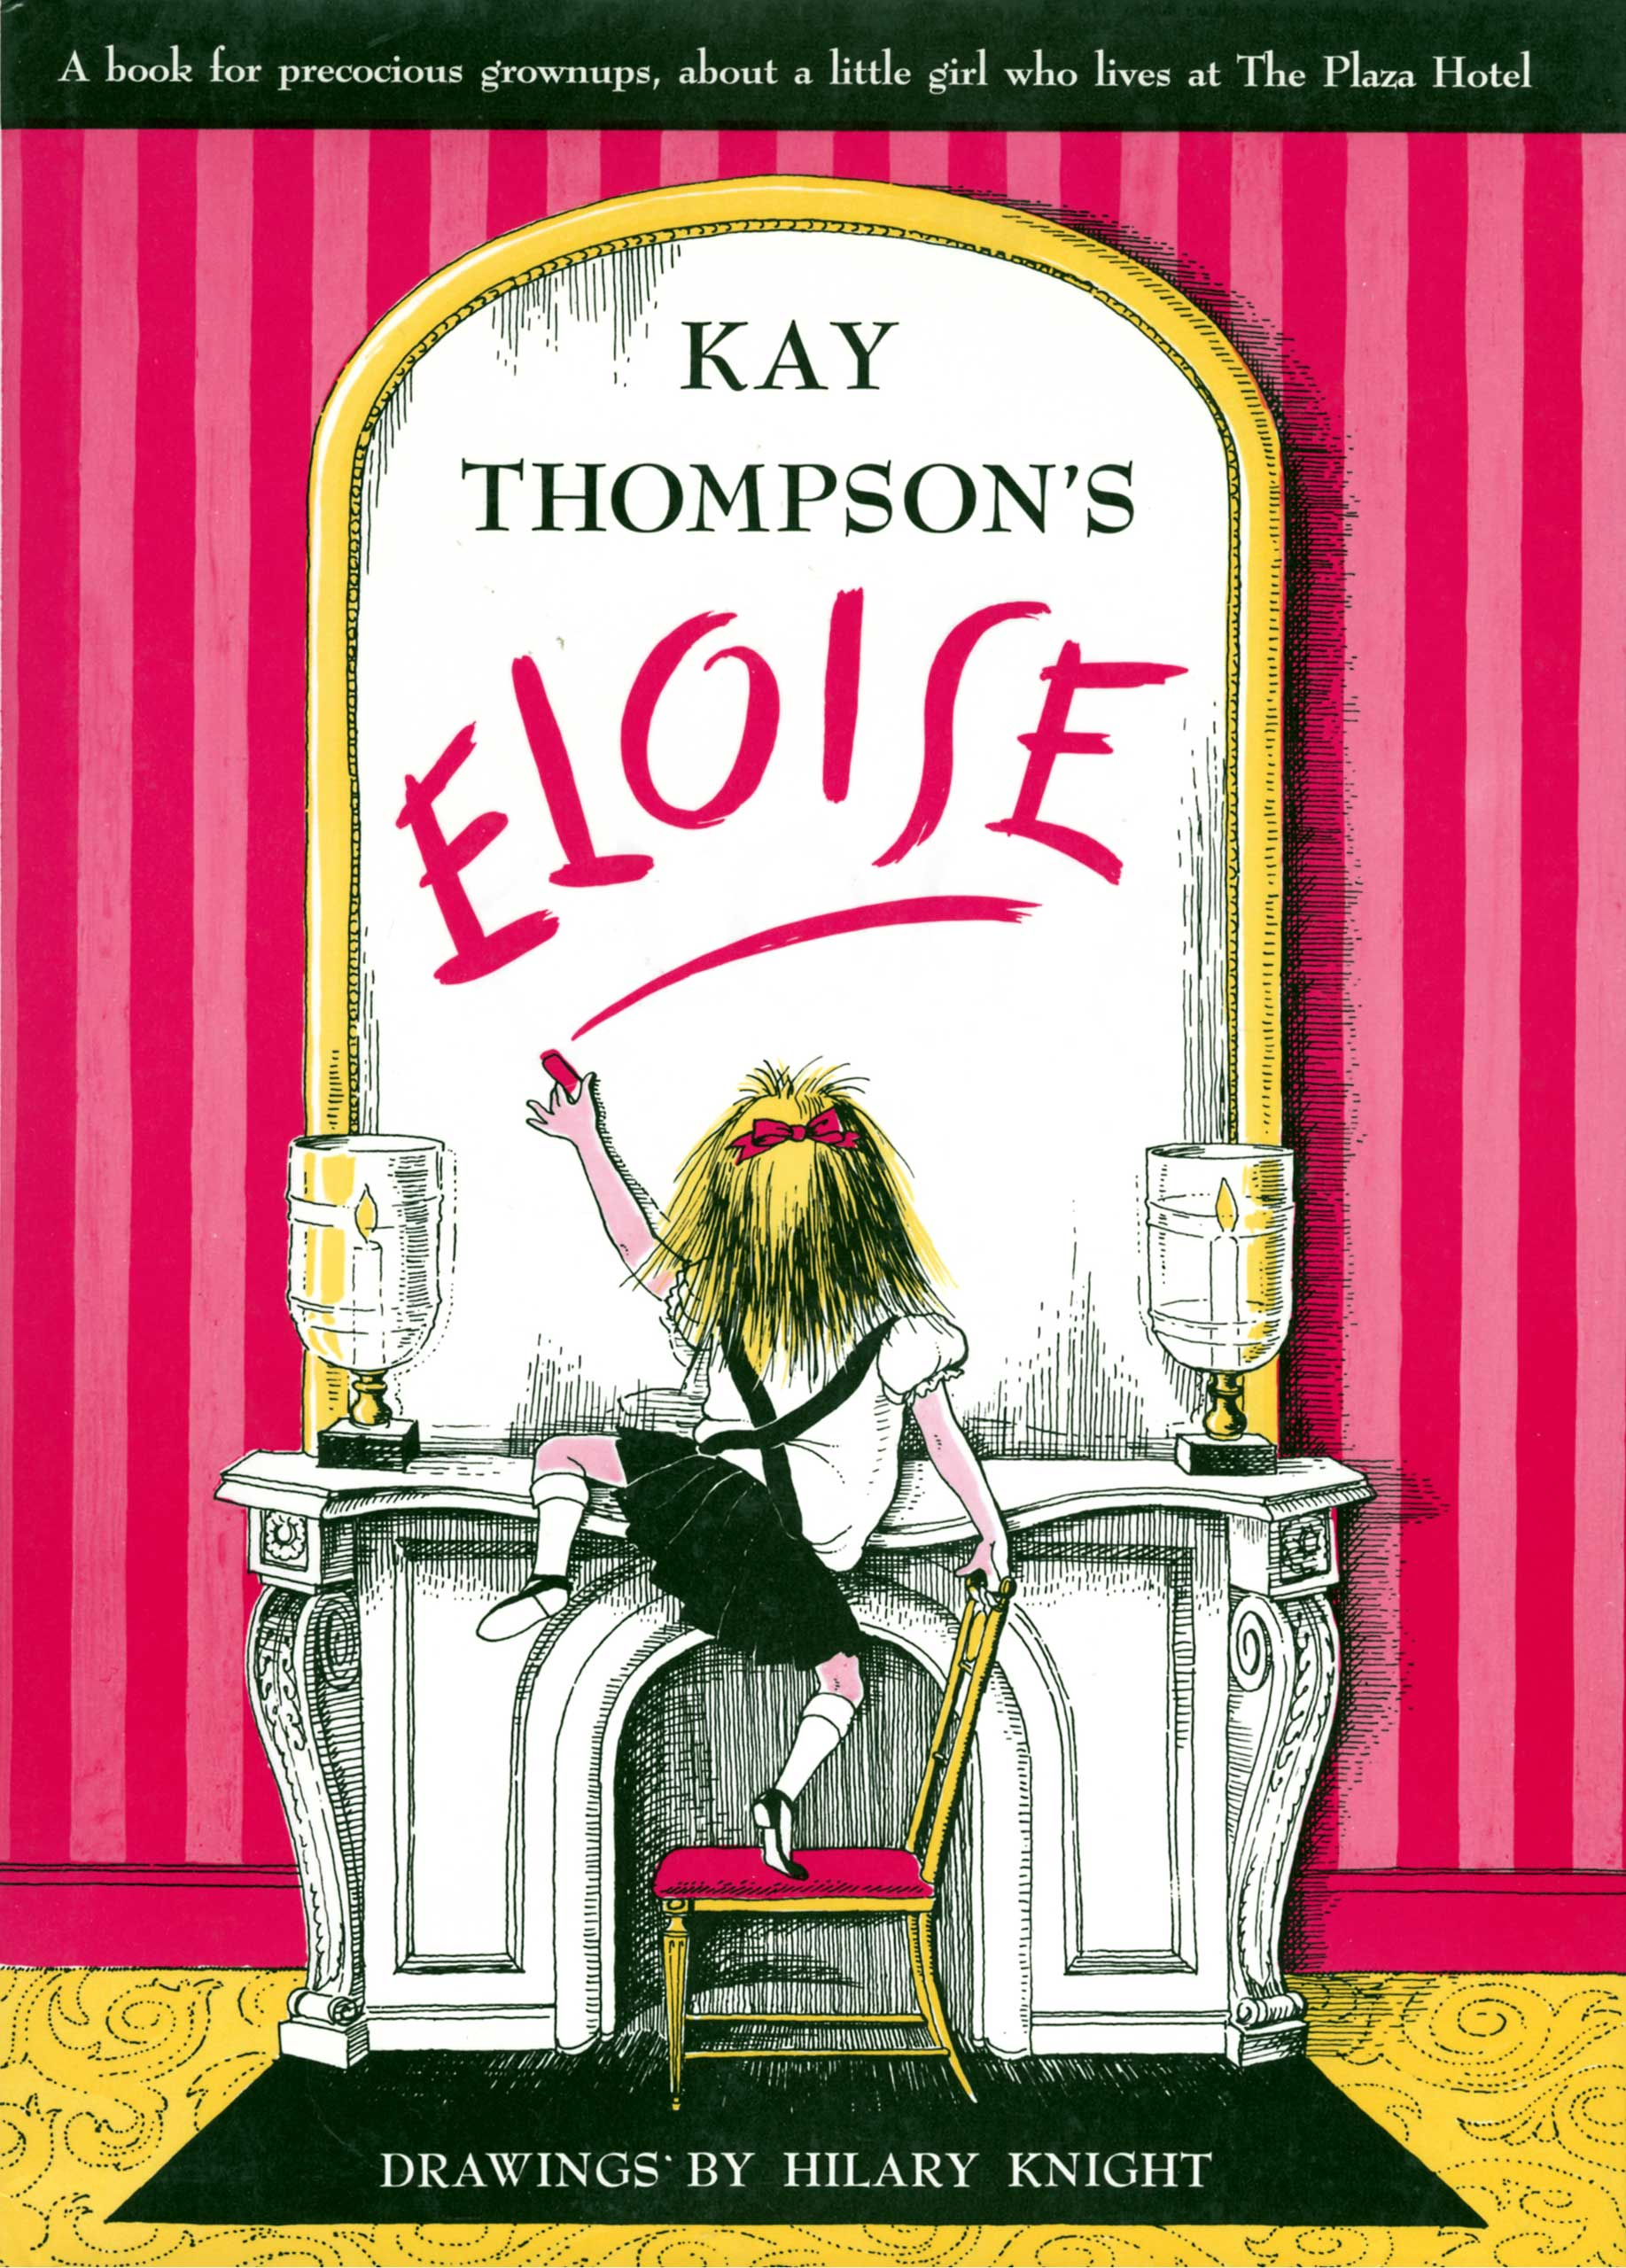 Eloise, by Kay Thompson, illustrations by Hilary Knight.                                                                                                                            An adventurous and confident young girl lives on the top floor of a New York hotel with her nanny, a dog, and a turtle.                                                                                                                            Buy now: Eloise